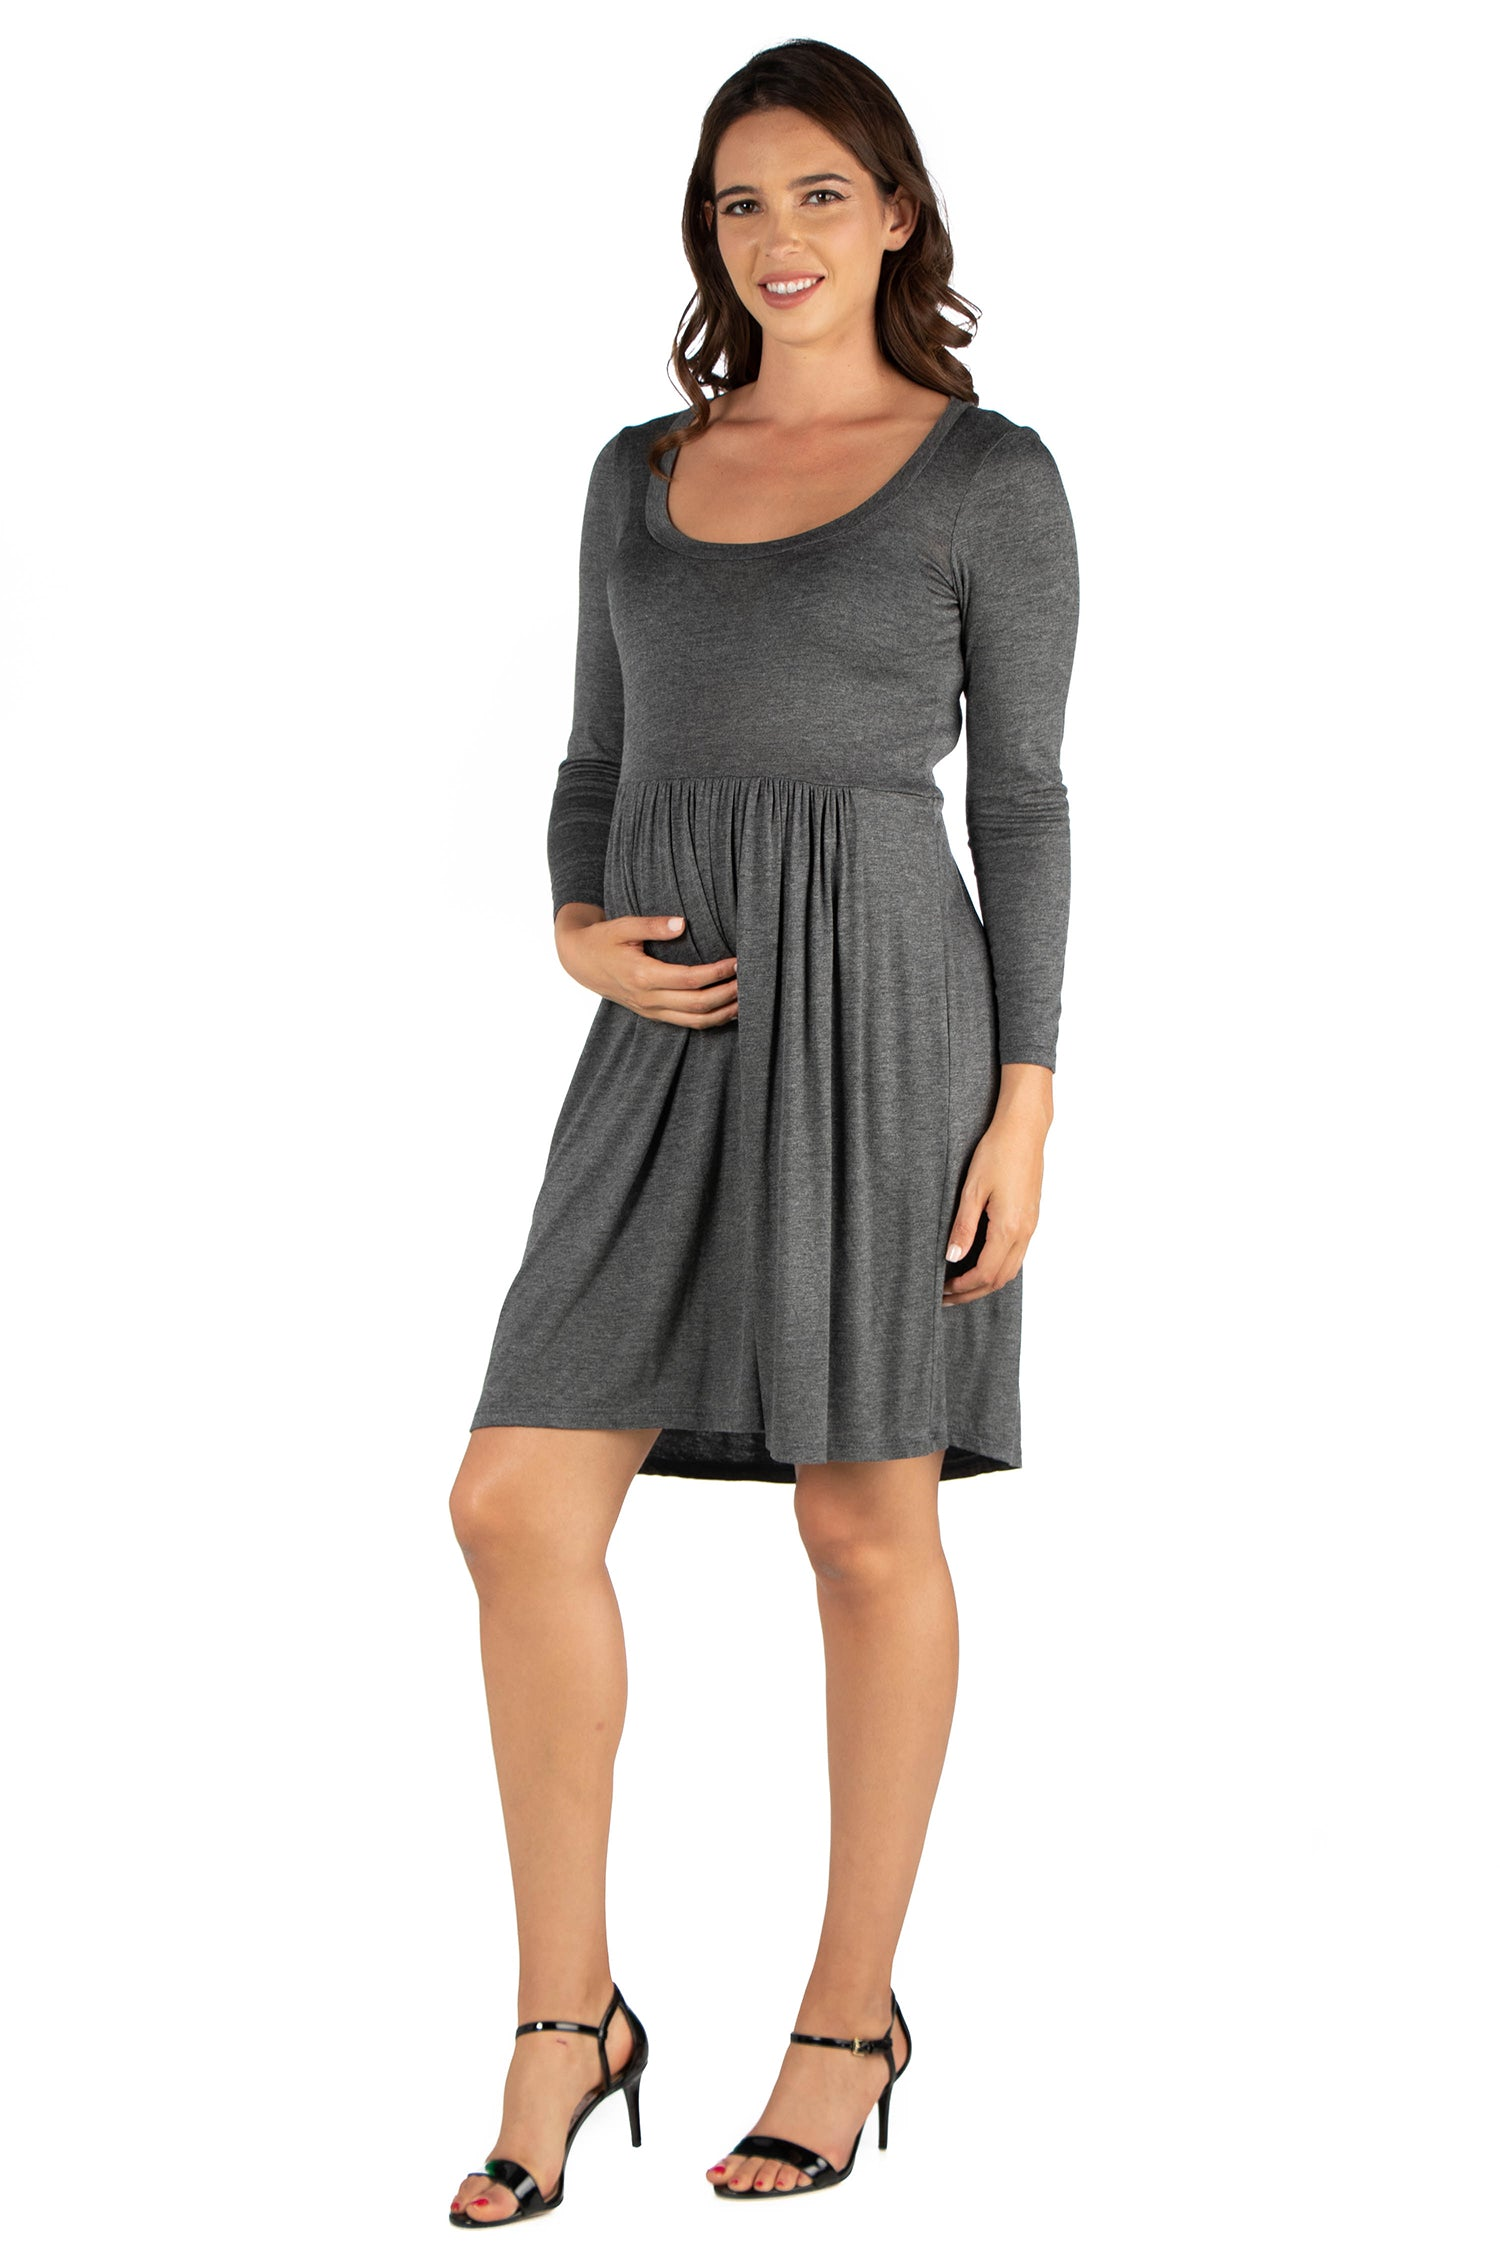 24seven Comfort Apparel Black Floral Print Long Sleeve Pleated Maternity Dress-DRESSES-24Seven Comfort Apparel-GREY-1X-24/7 Comfort Apparel